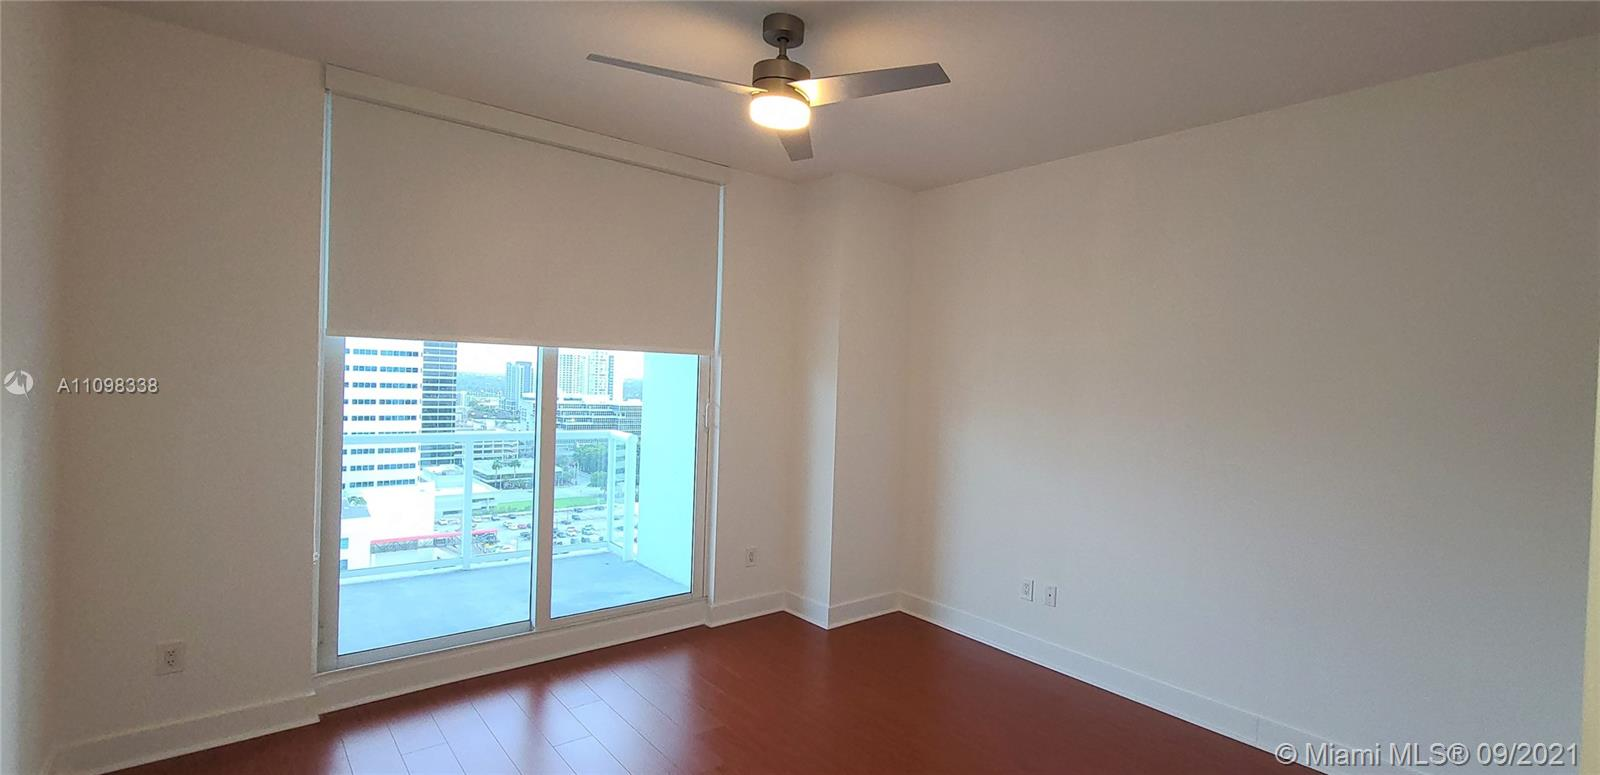 315 NE 3rd Ave #2004 For Sale A11098338, FL